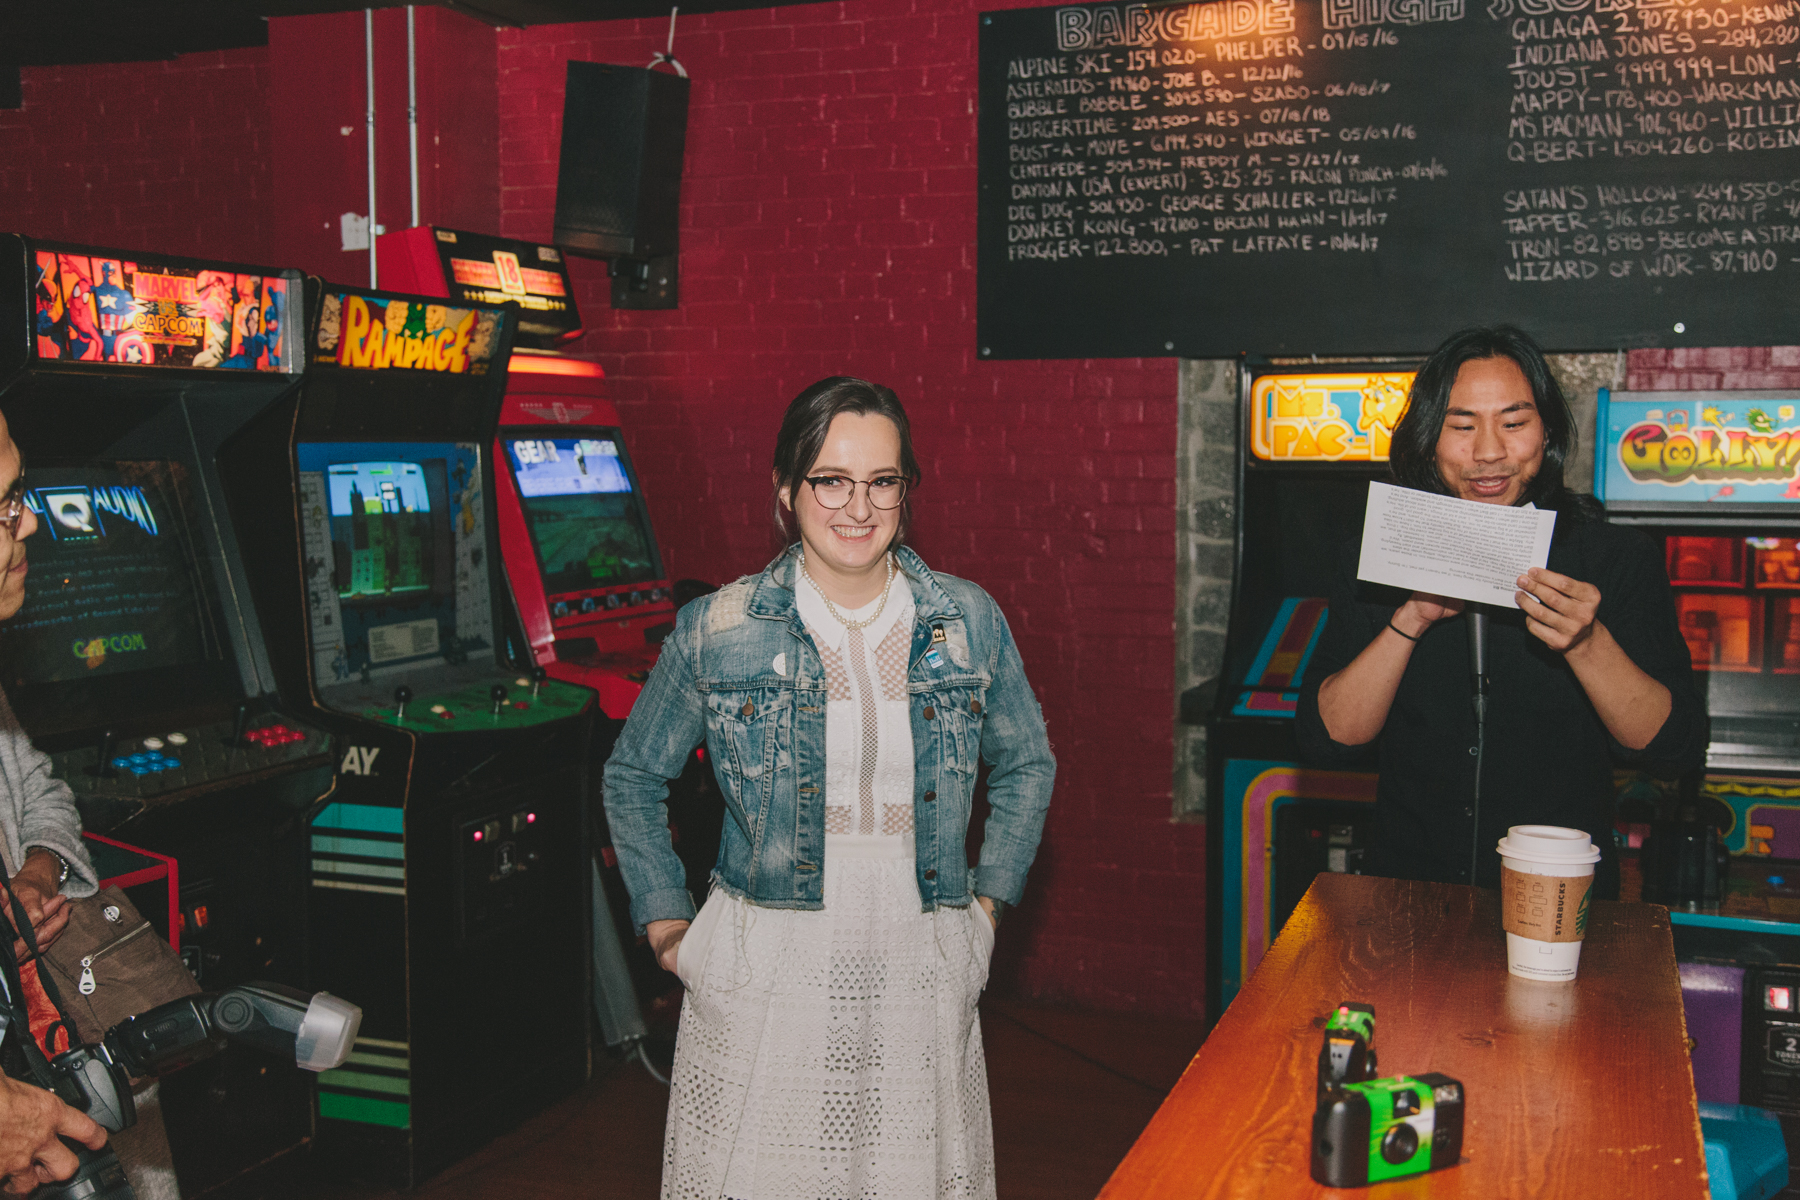 Barcade New Haven Wedding-45.jpg